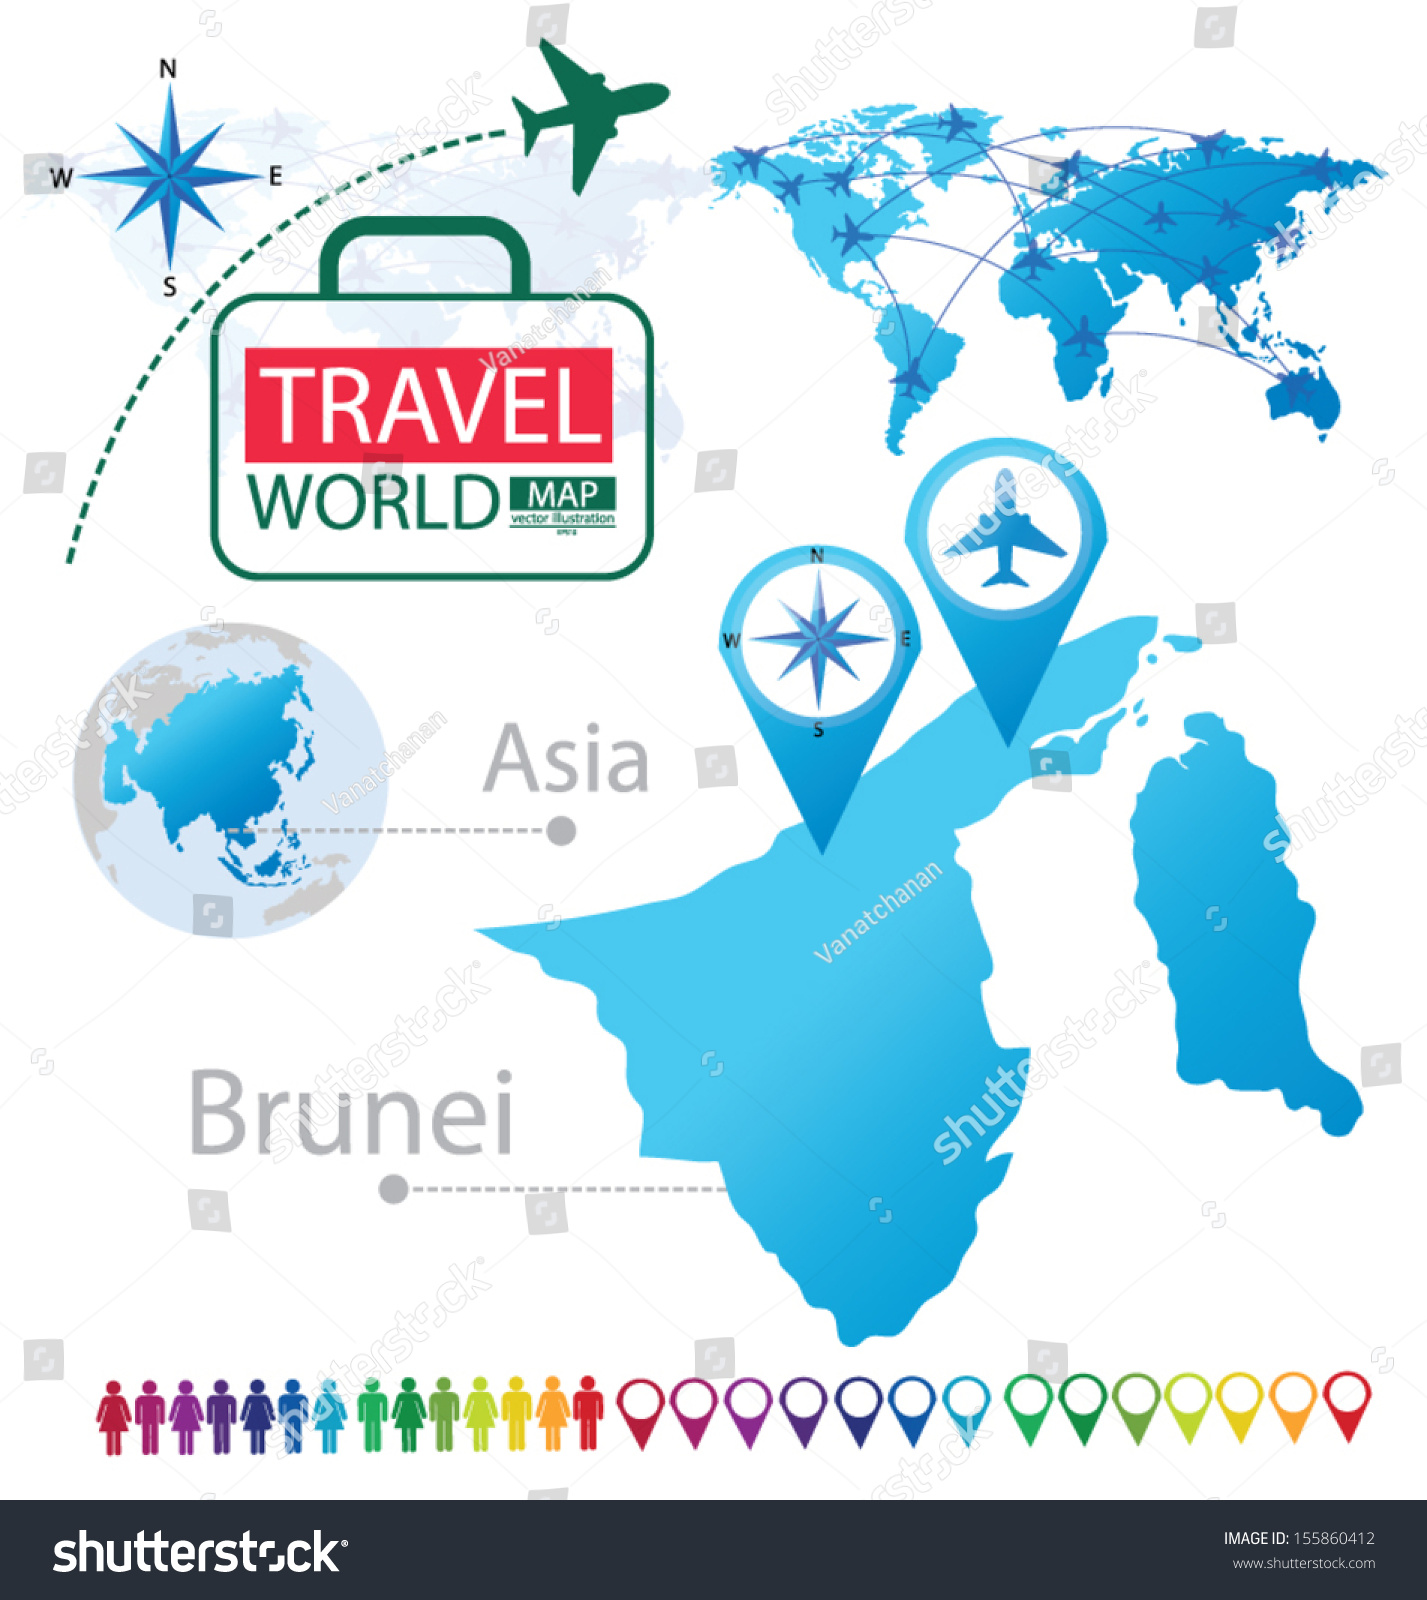 Map Of Asia Brunei.Brunei Asia World Map Travel Vector Stock Vector Royalty Free